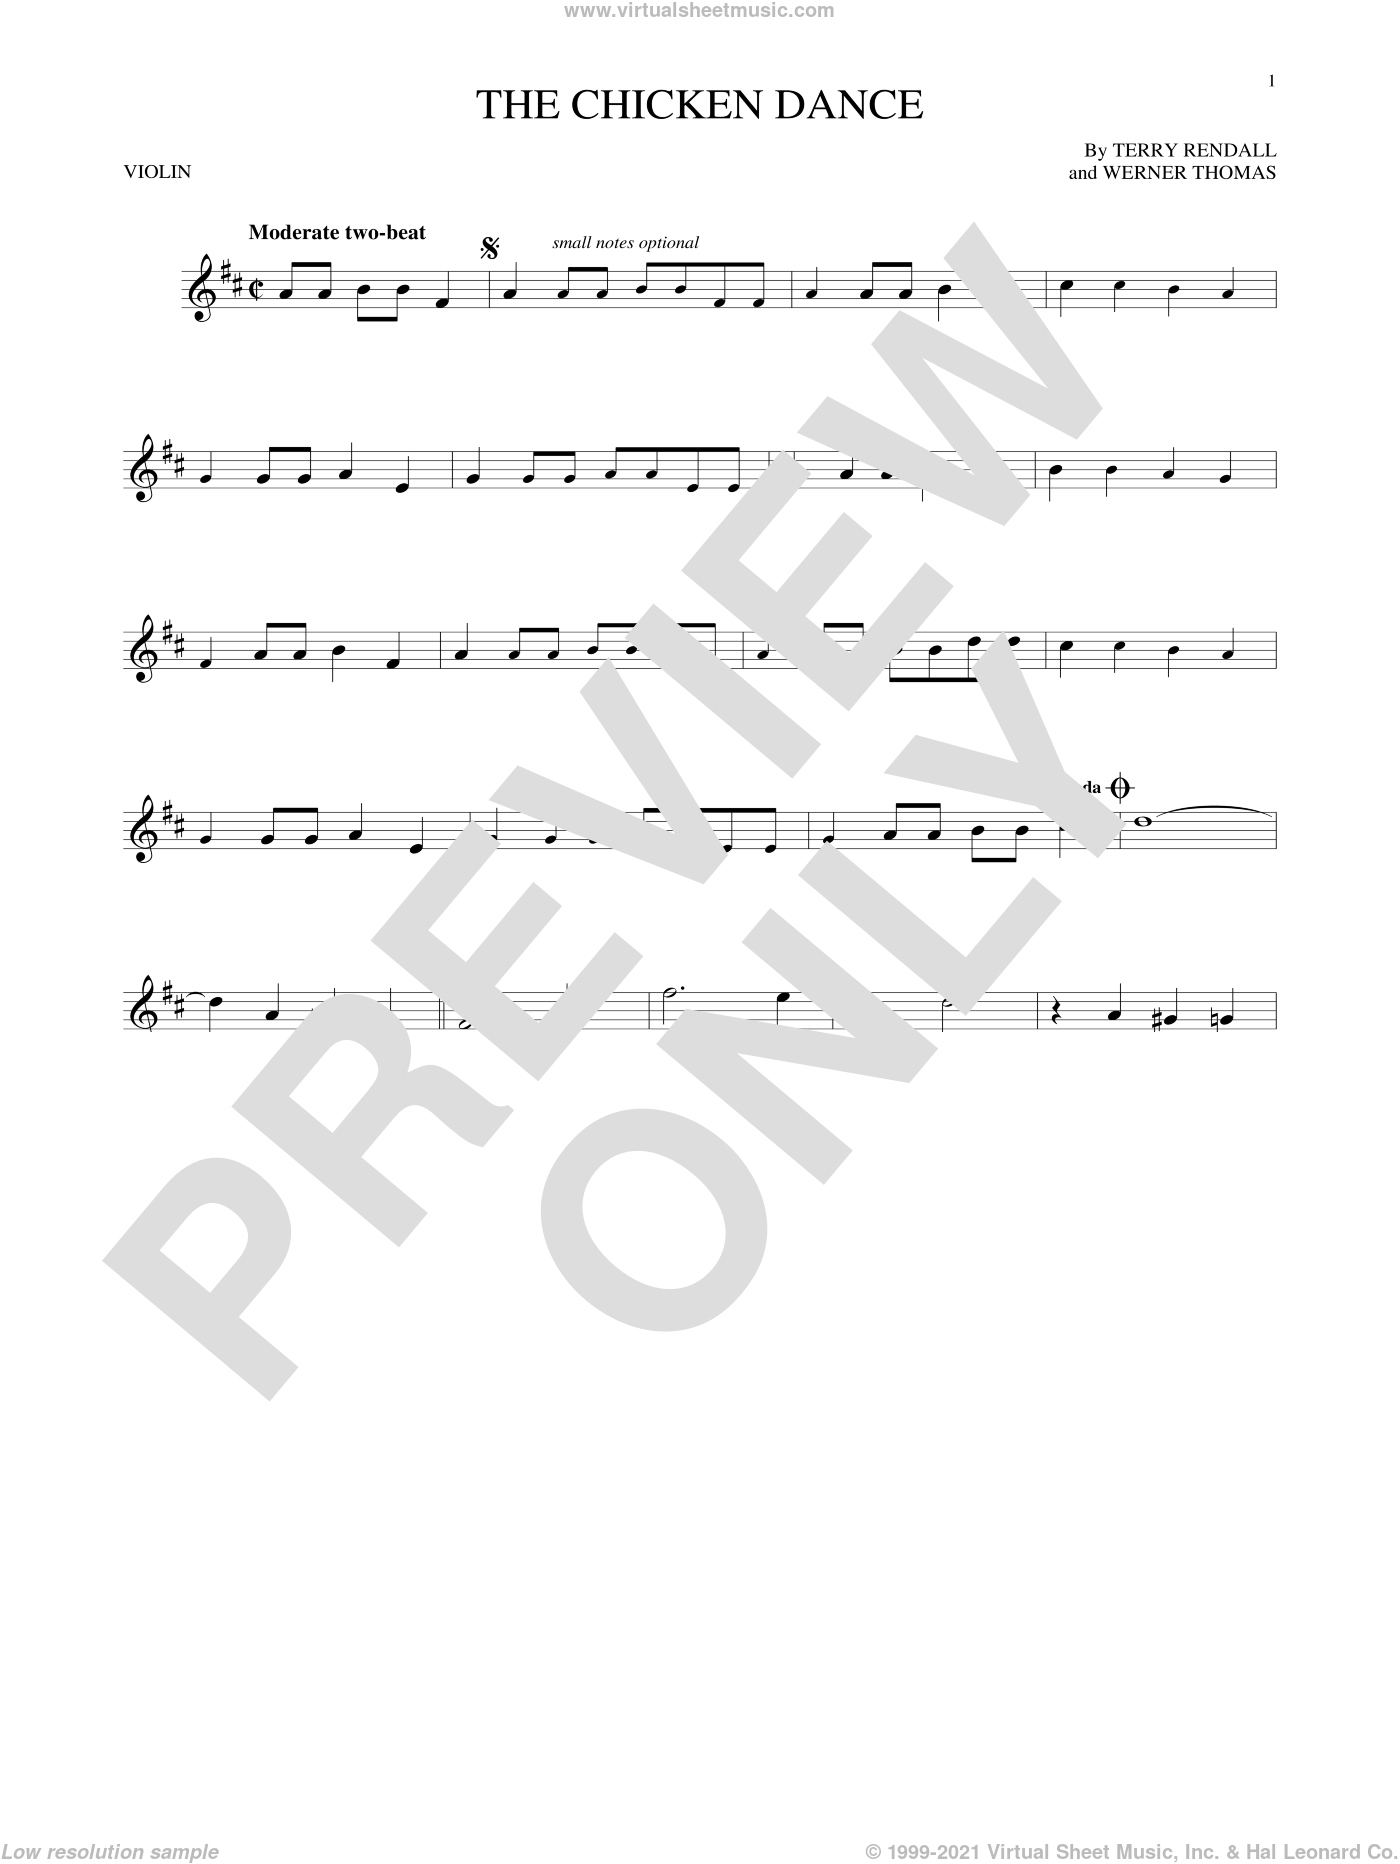 The Chicken Dance sheet music for violin solo by Terry Rendall